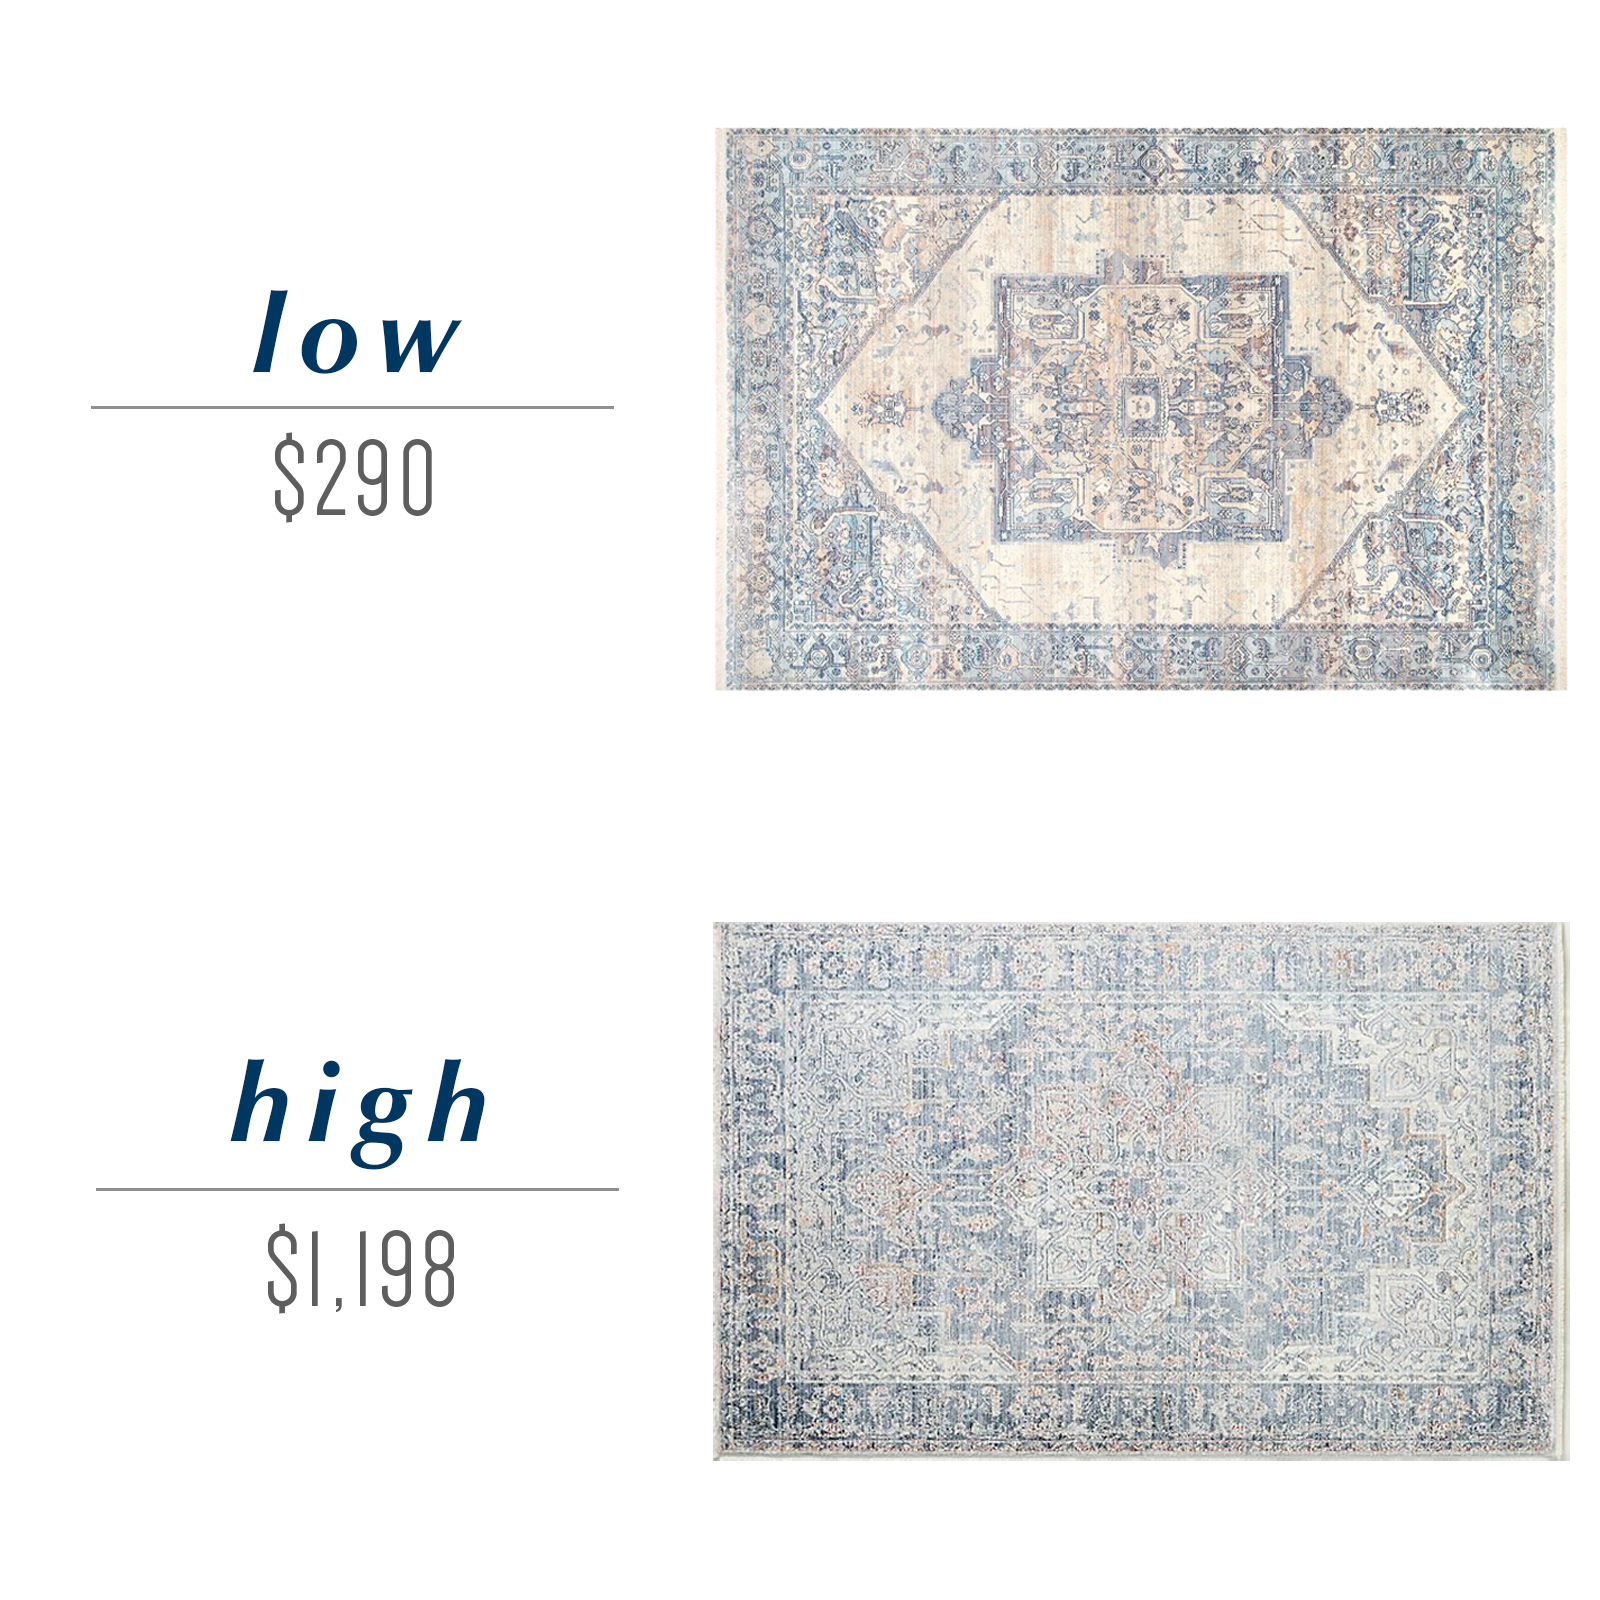 Get the look for less or decide to splurge! Come see the budget-friendly and spend-worthy pieces of furniture in this blog post including the high/low sources for these vintage-style Persian rugs in blue and ivory!